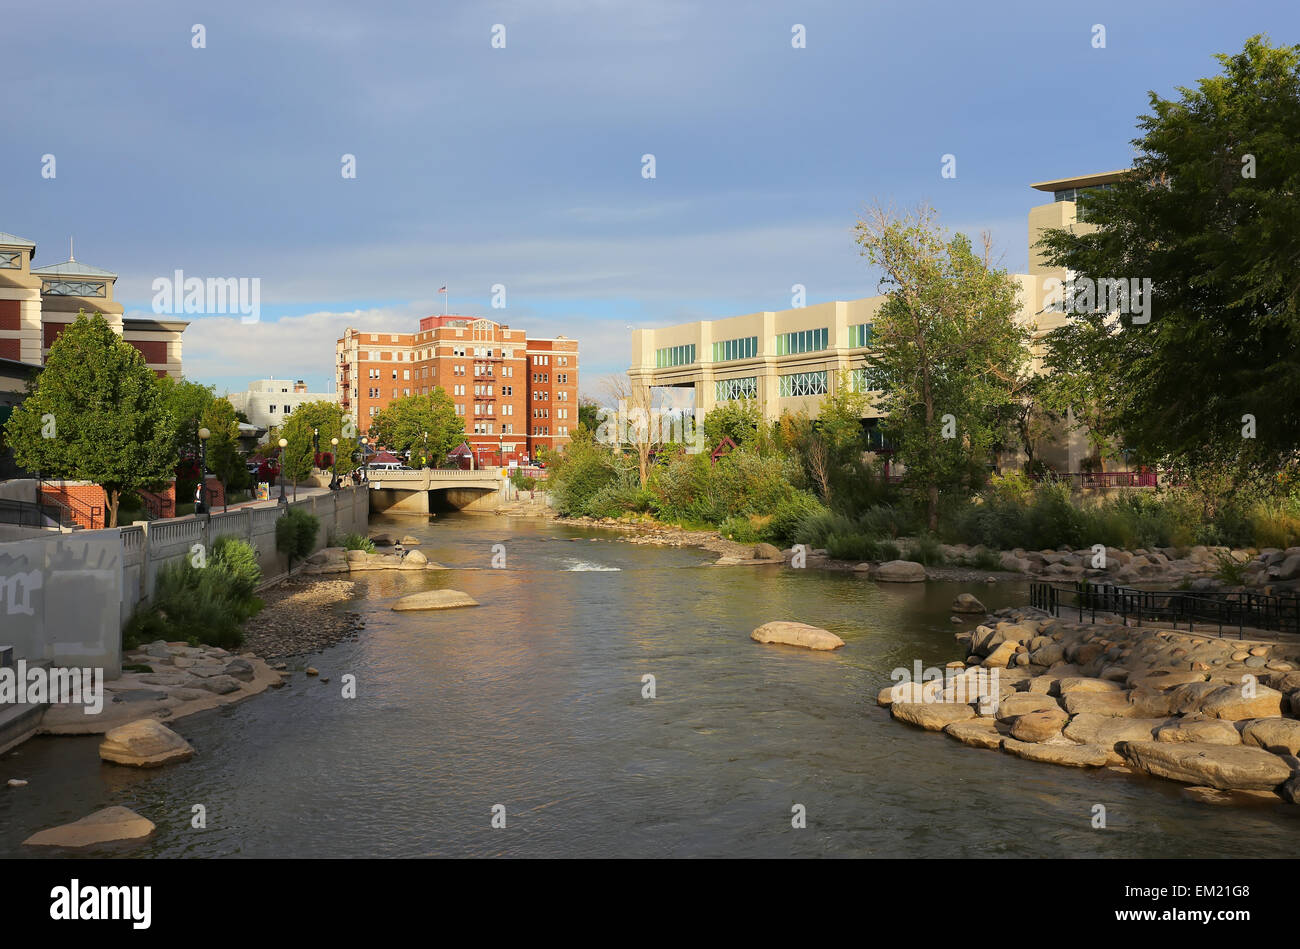 Truckee river in downtown Reno, Nevada, USA - Stock Image